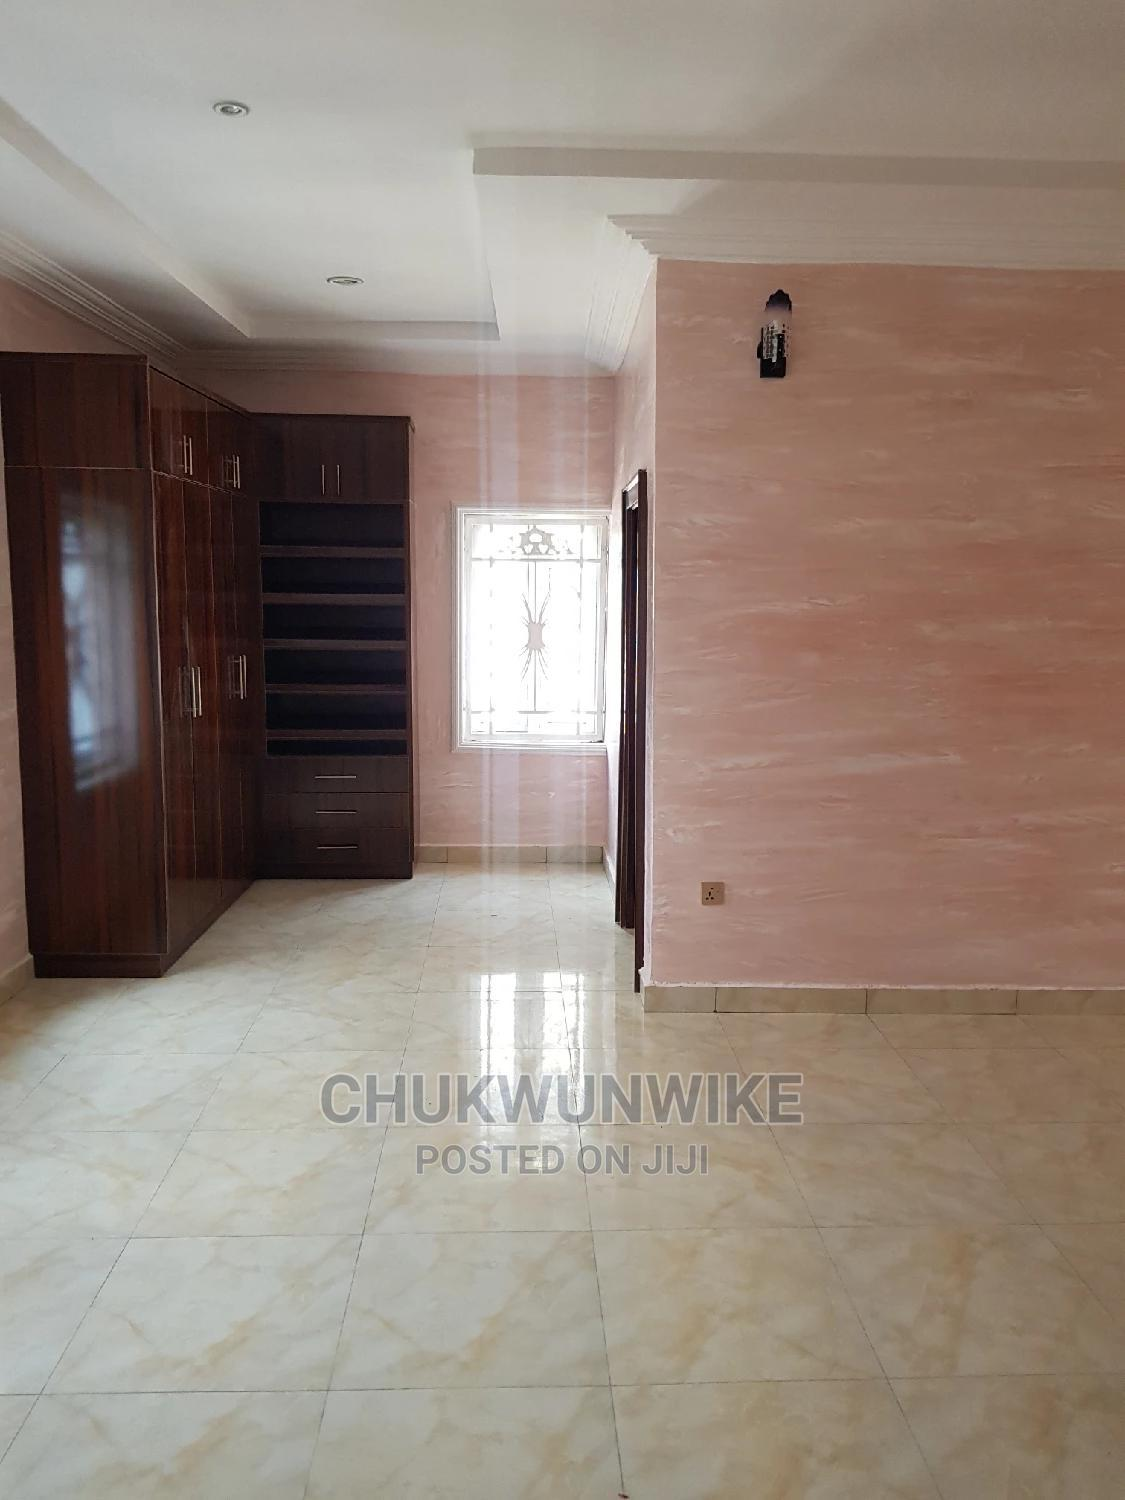 5 Bedroom Duplex for Sale. | Houses & Apartments For Sale for sale in Gwarinpa, Abuja (FCT) State, Nigeria